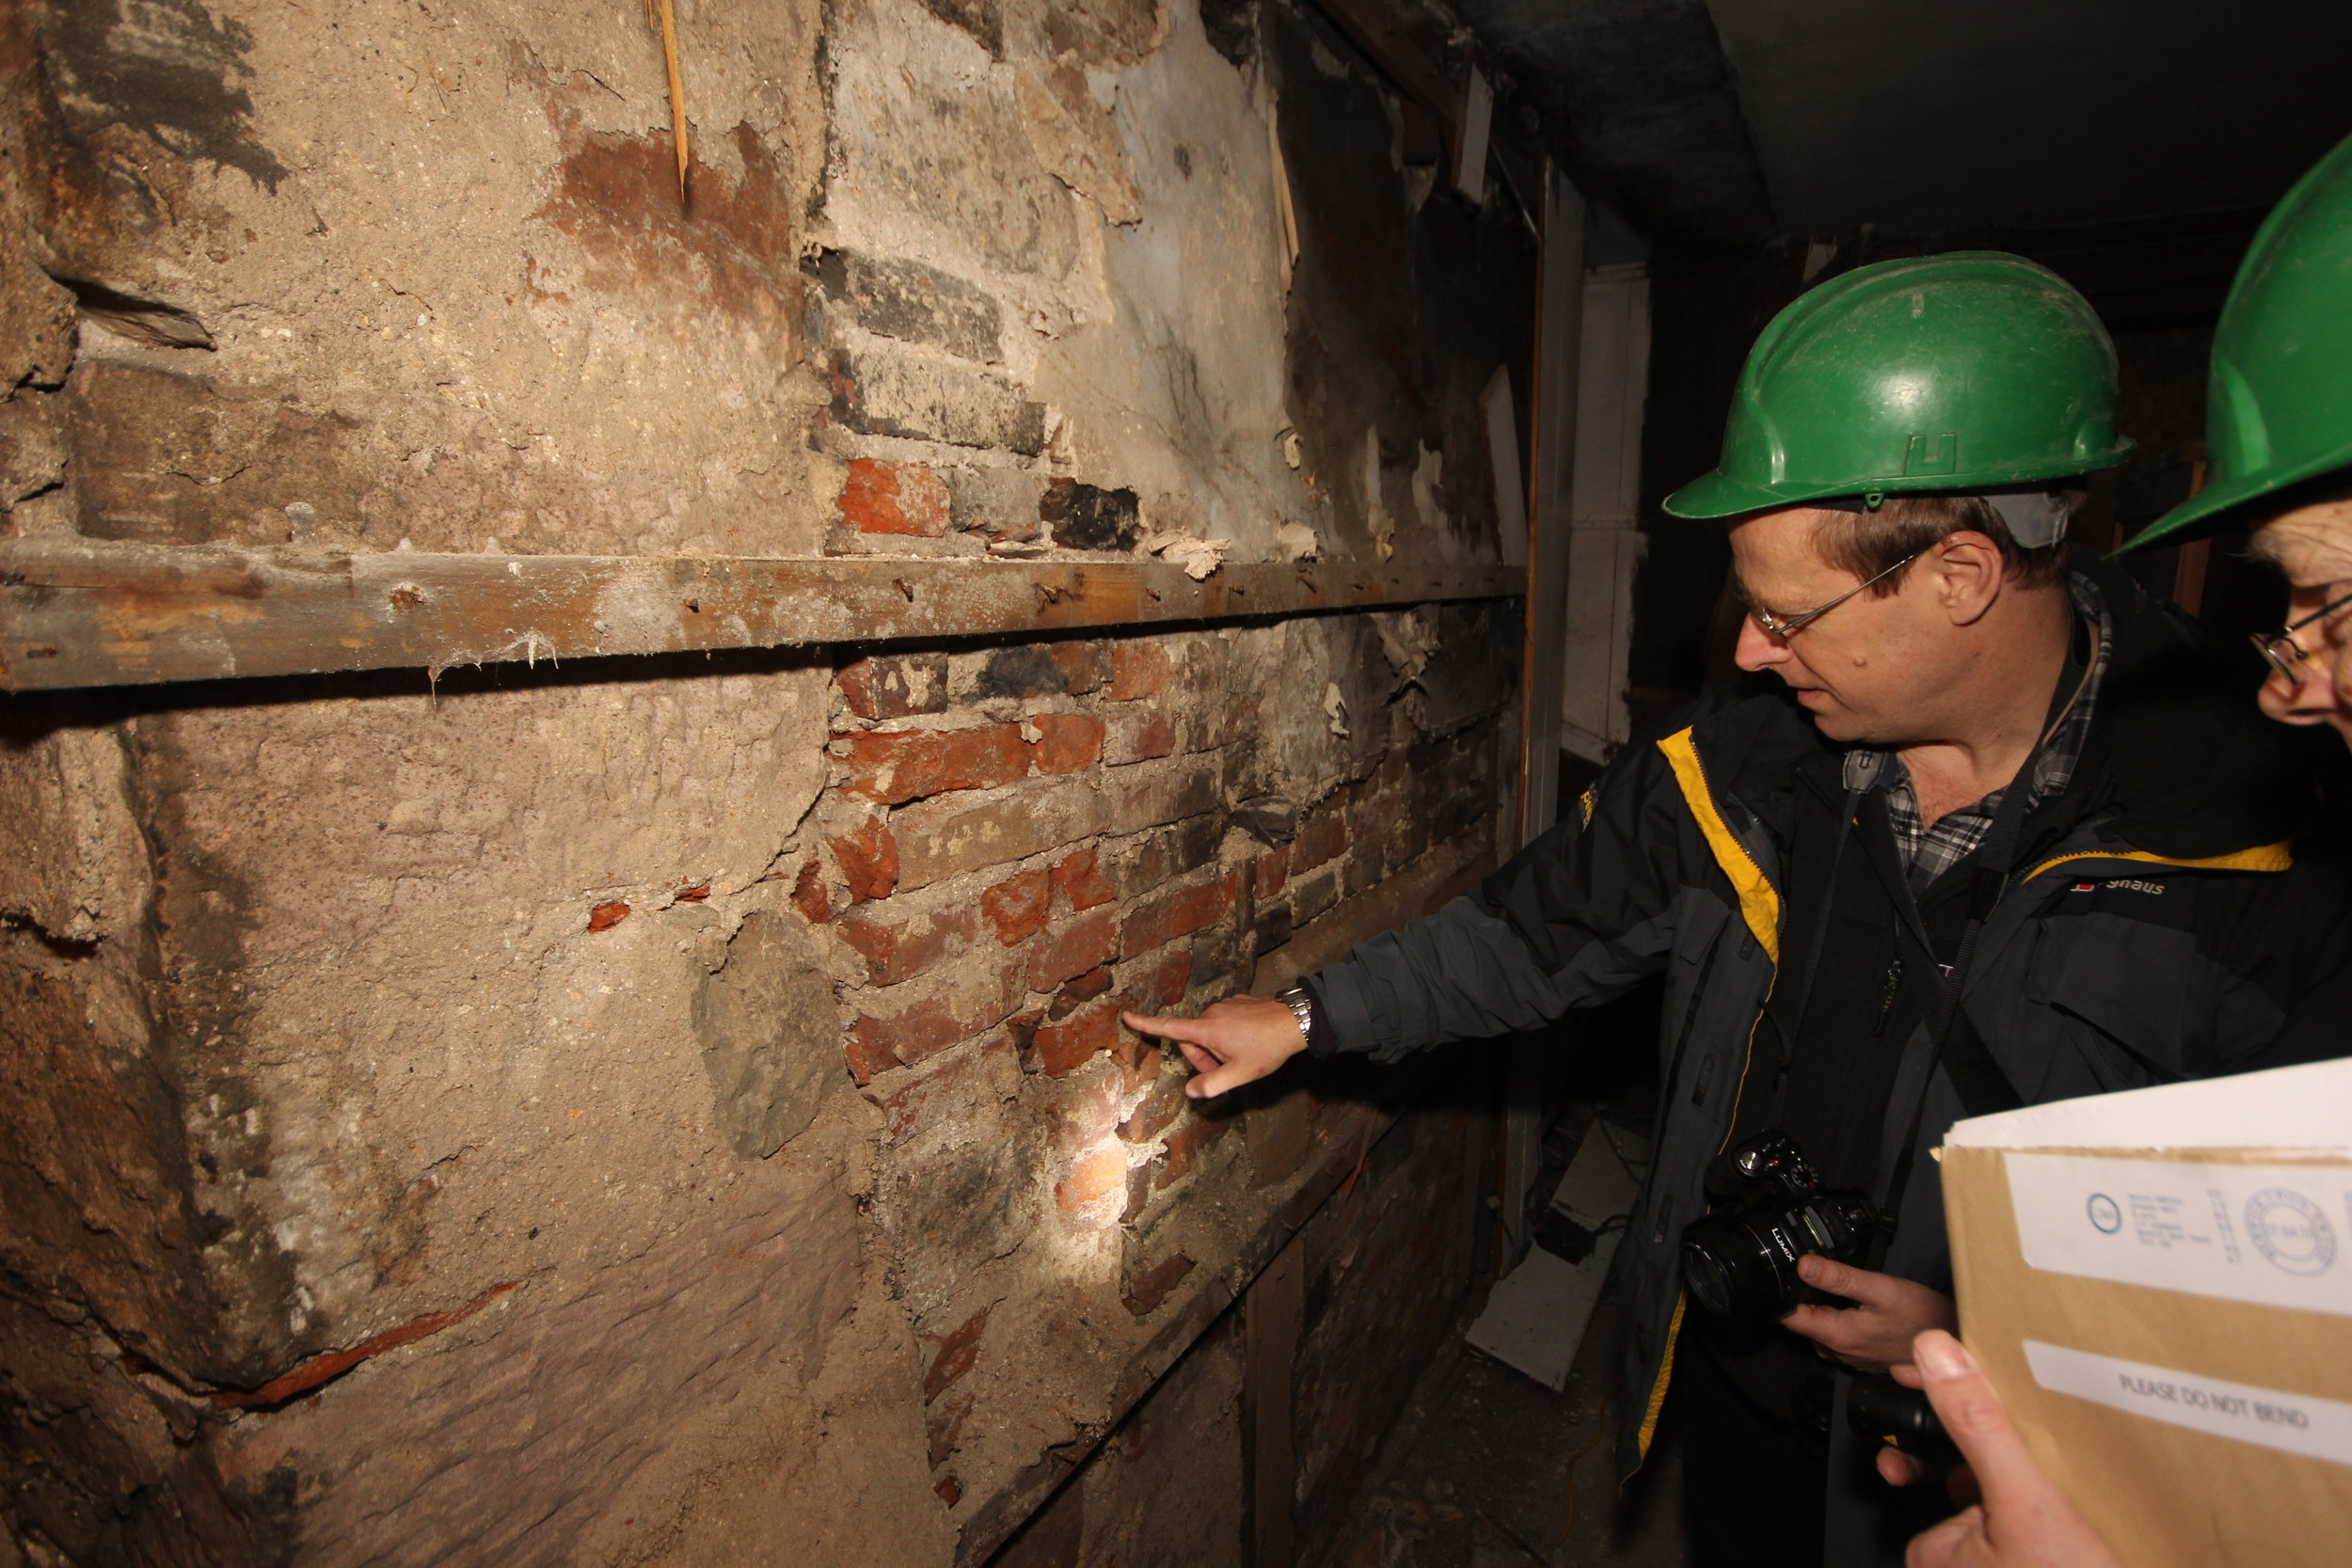 As well as recording, interpretation plays a major part in understanding a building's past. Here, architectural historian Dr Adam Menuge examines a chimney breast in the main shop.